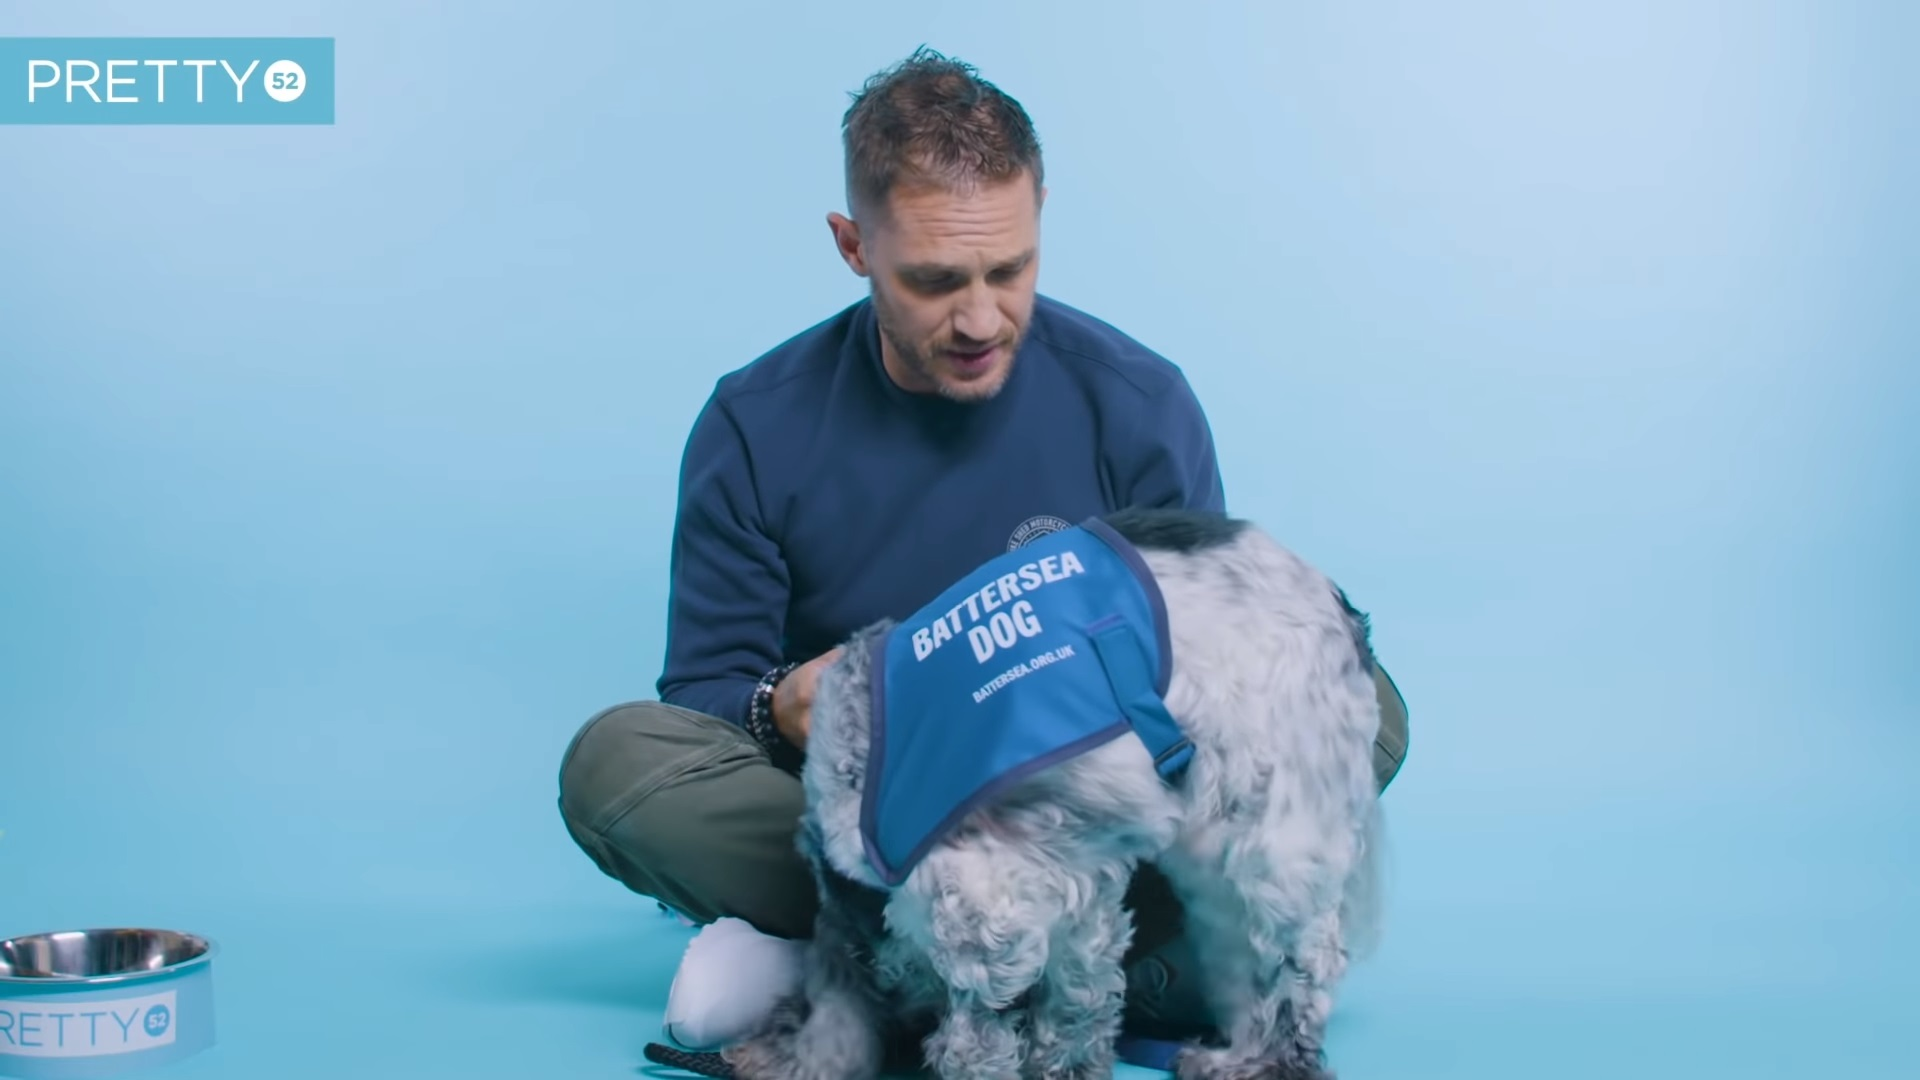 watch-tom-hardy-play-with-dogs-if-venom-isnt-your-cup-of-tea-social.jpg